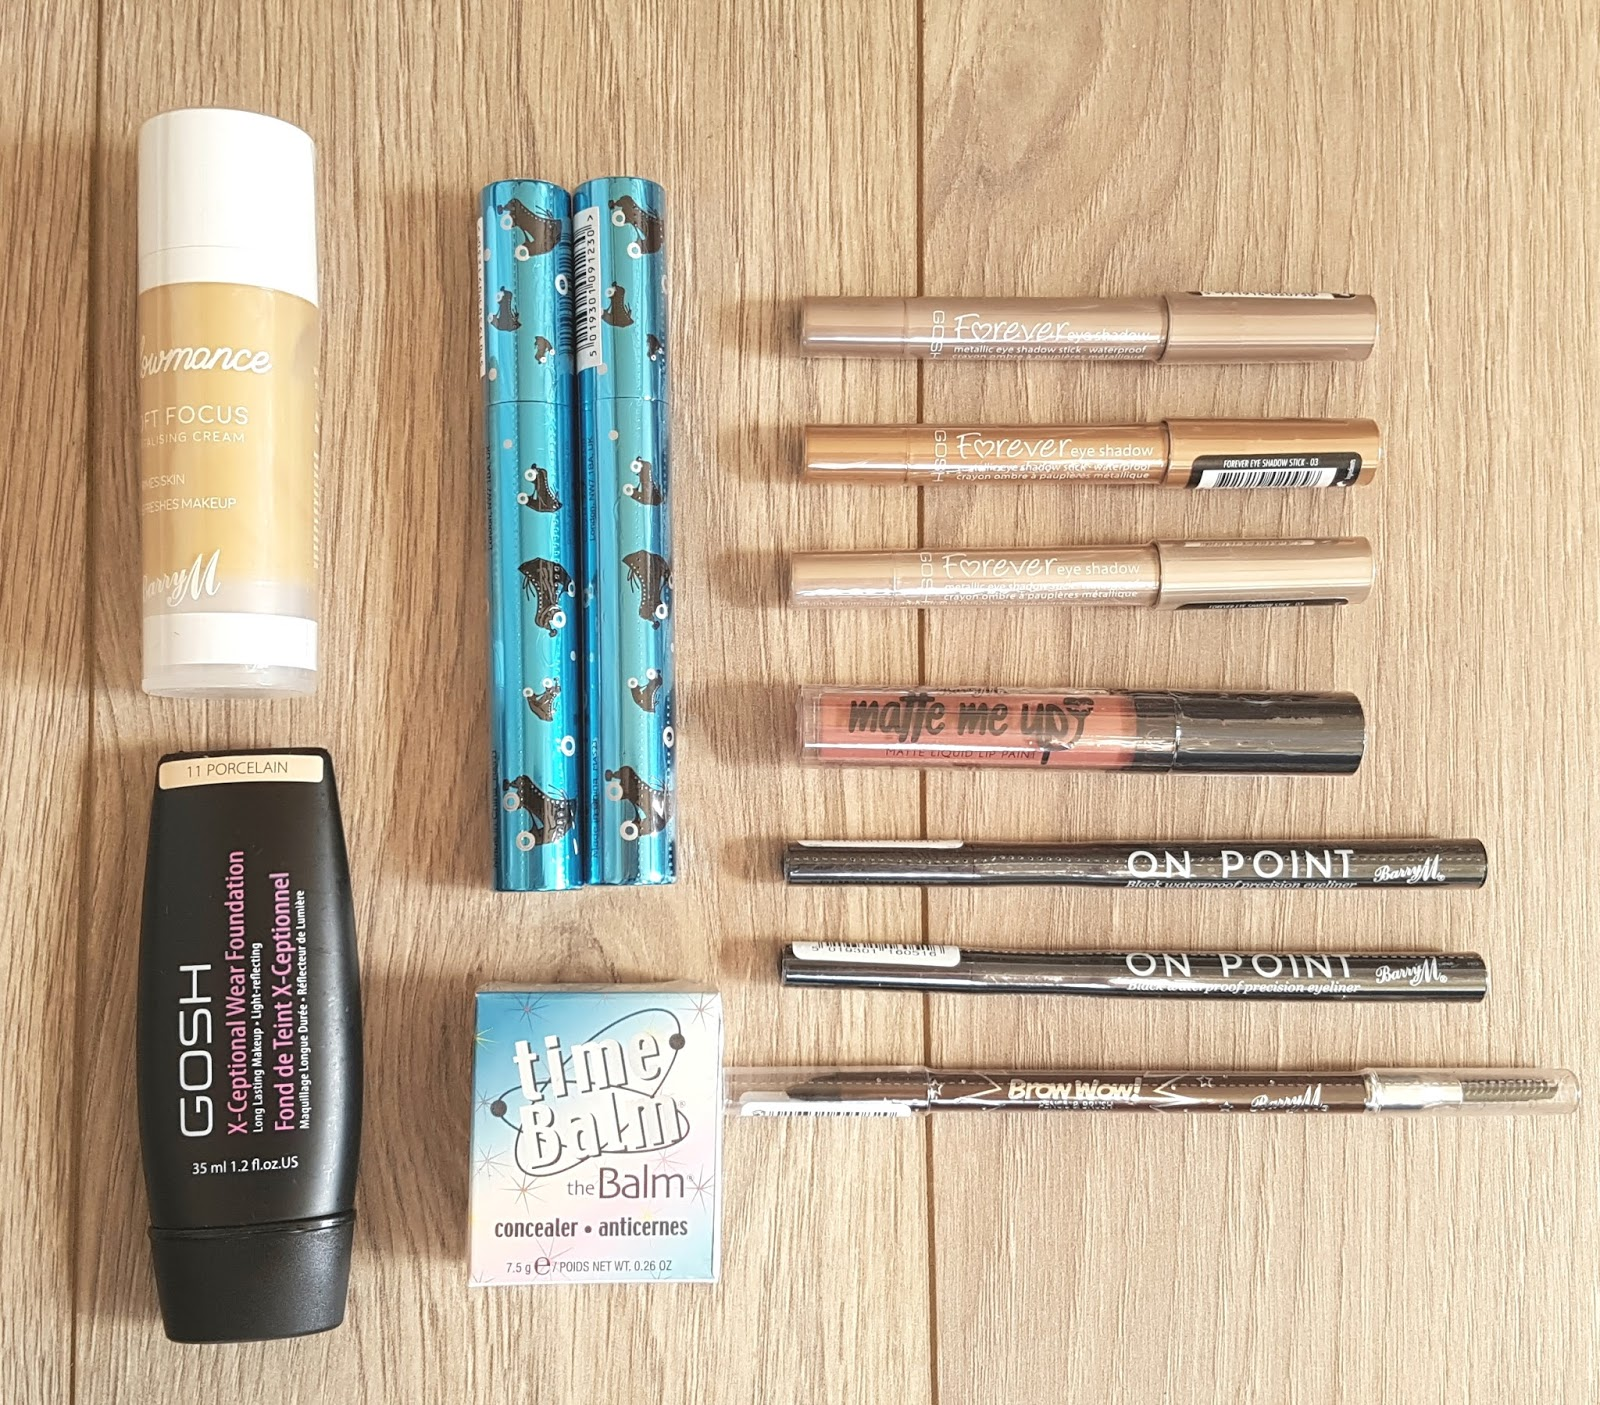 309de009a53 Barry M that's how I roll waterproof mascara - I am loving this mascara,  the packaging is really good quality, super cute design and actually gives  my ...